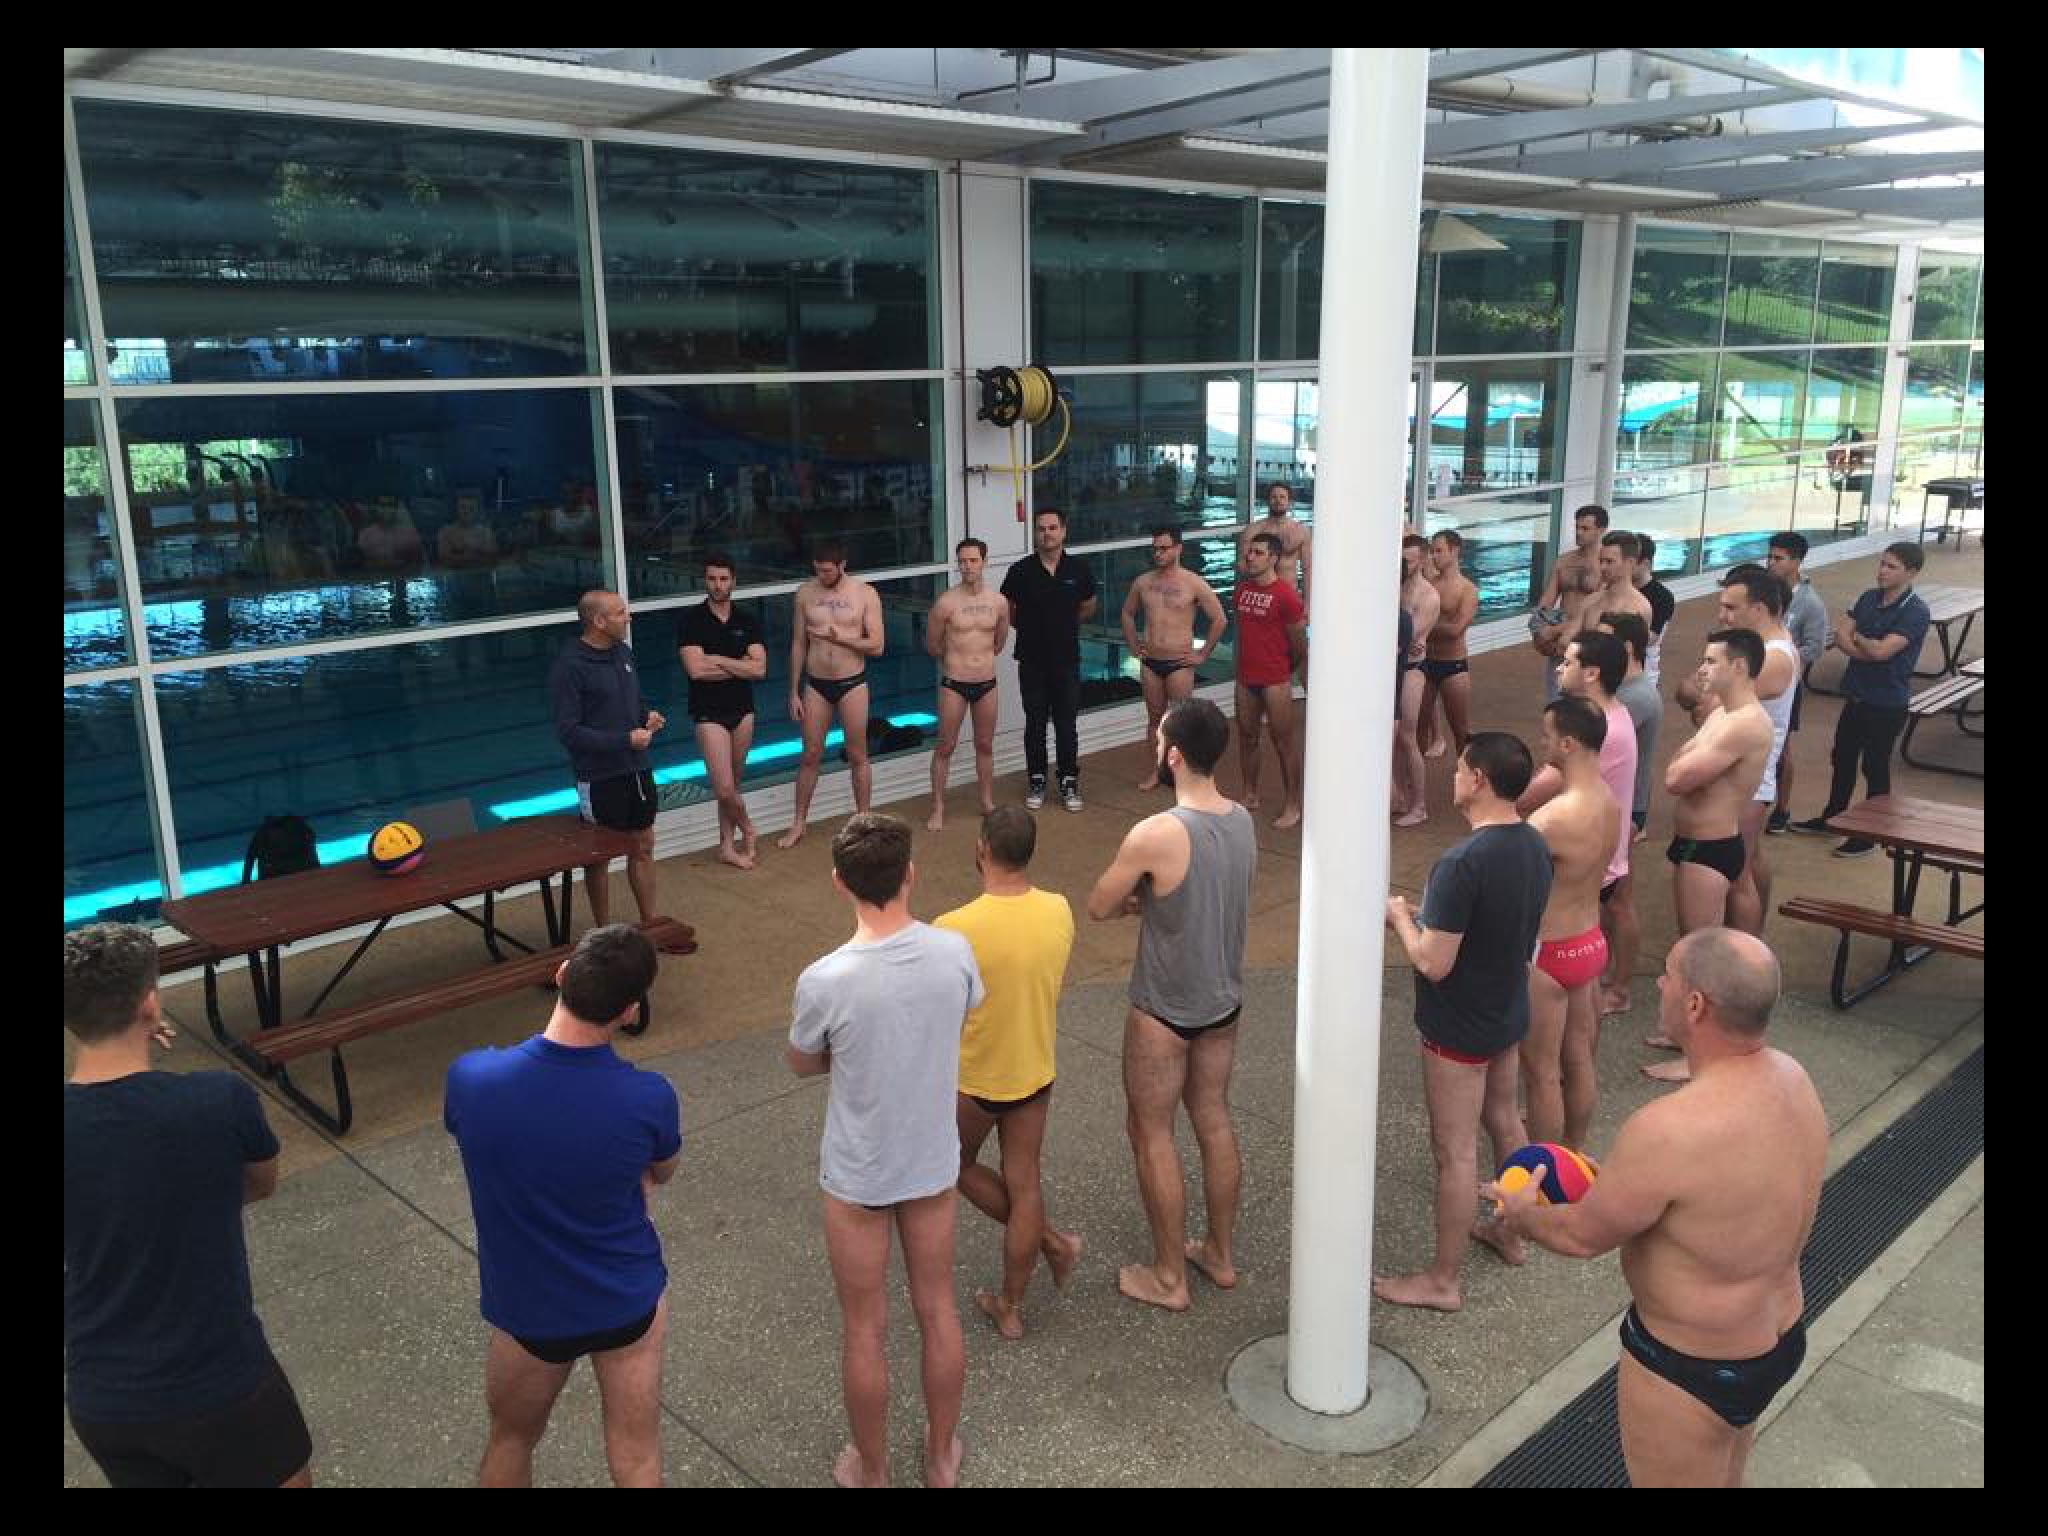 Suns out guns out, Bootcampers get down to their speedos and learn some ball control.